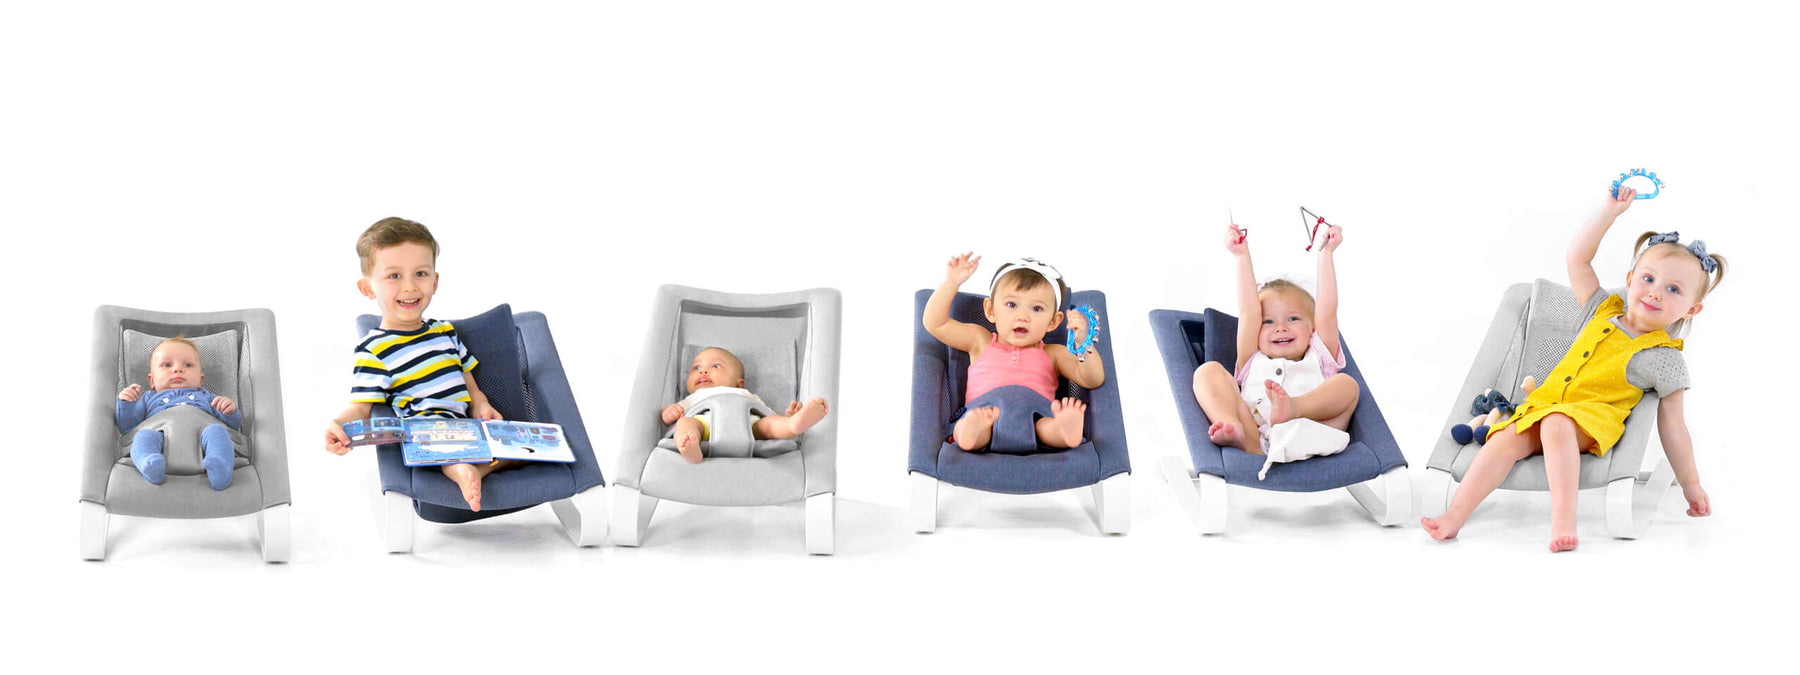 4 kids and 2 newborn baby smiling on their baby bouncer chair